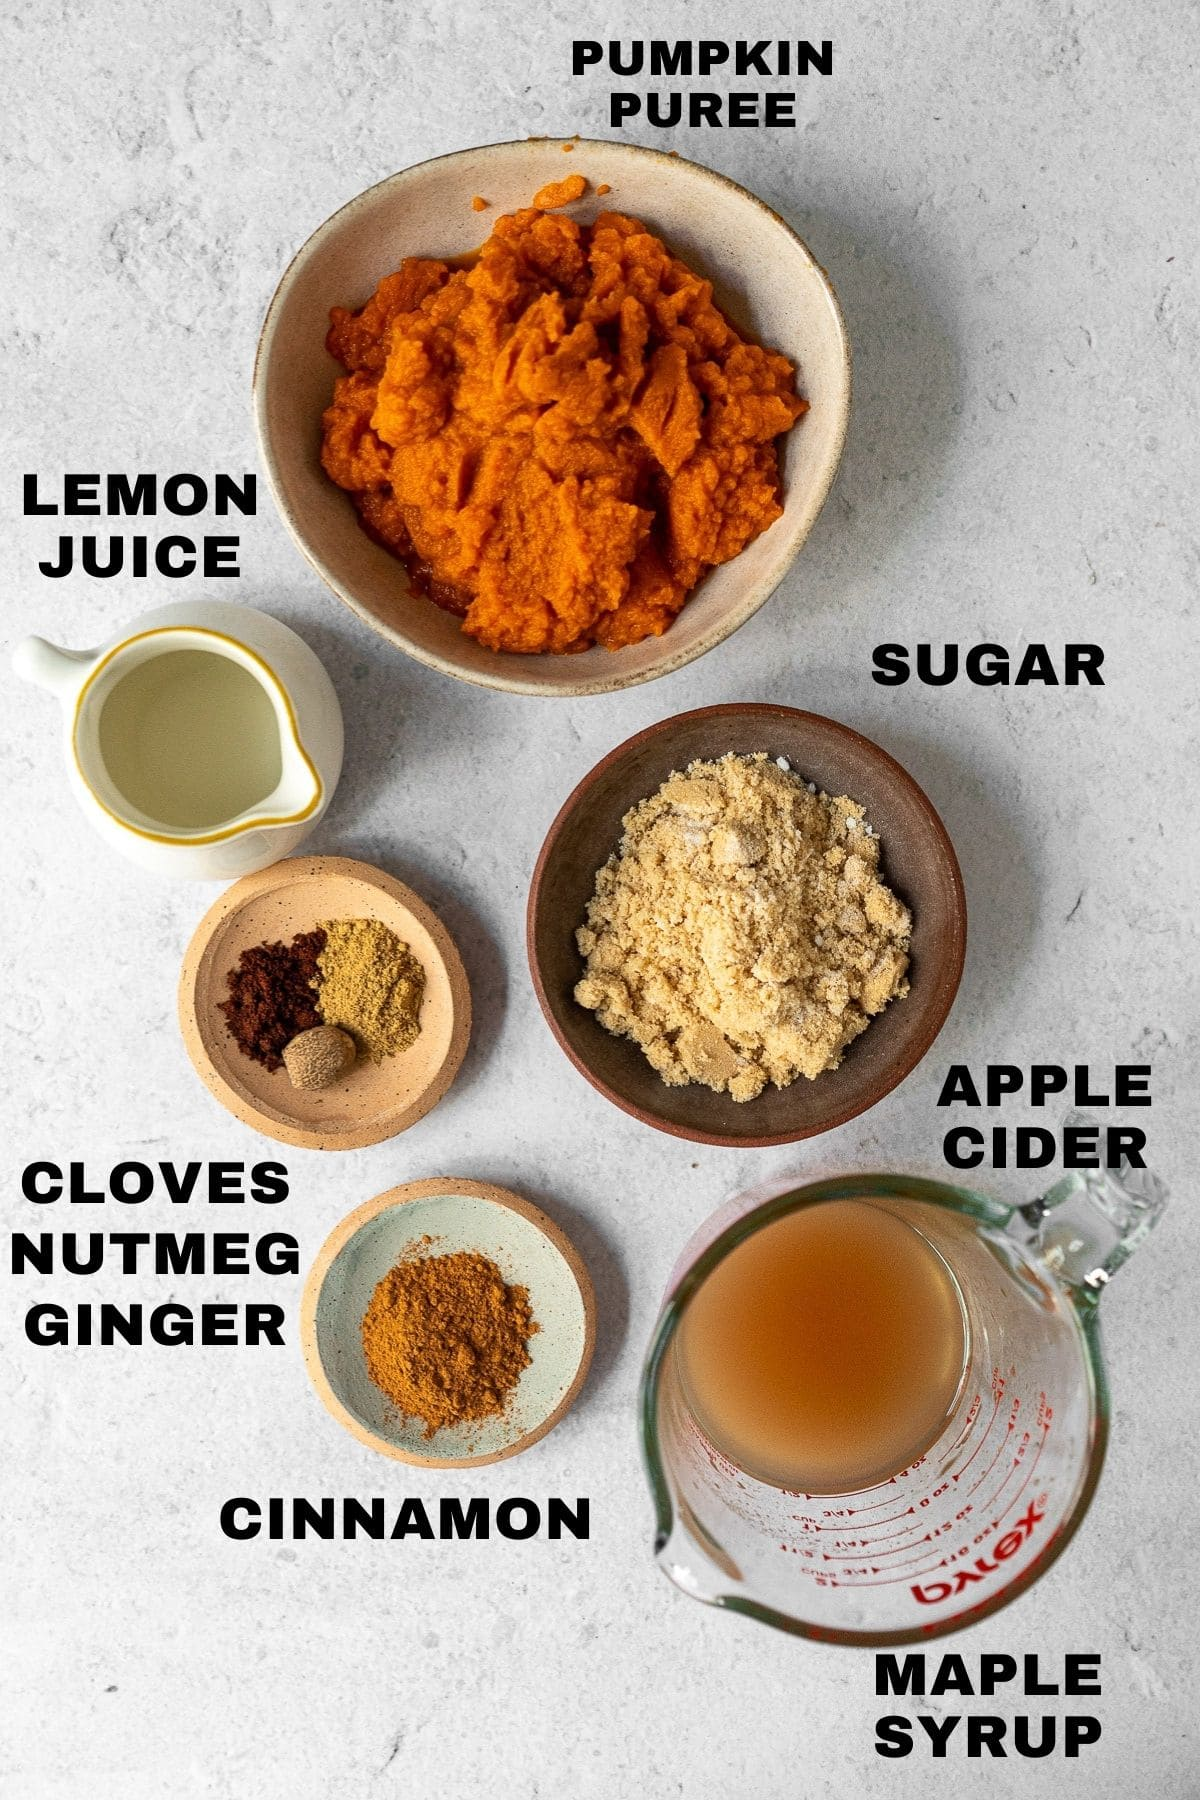 flatlay of pumpkin butter ingredients with labels